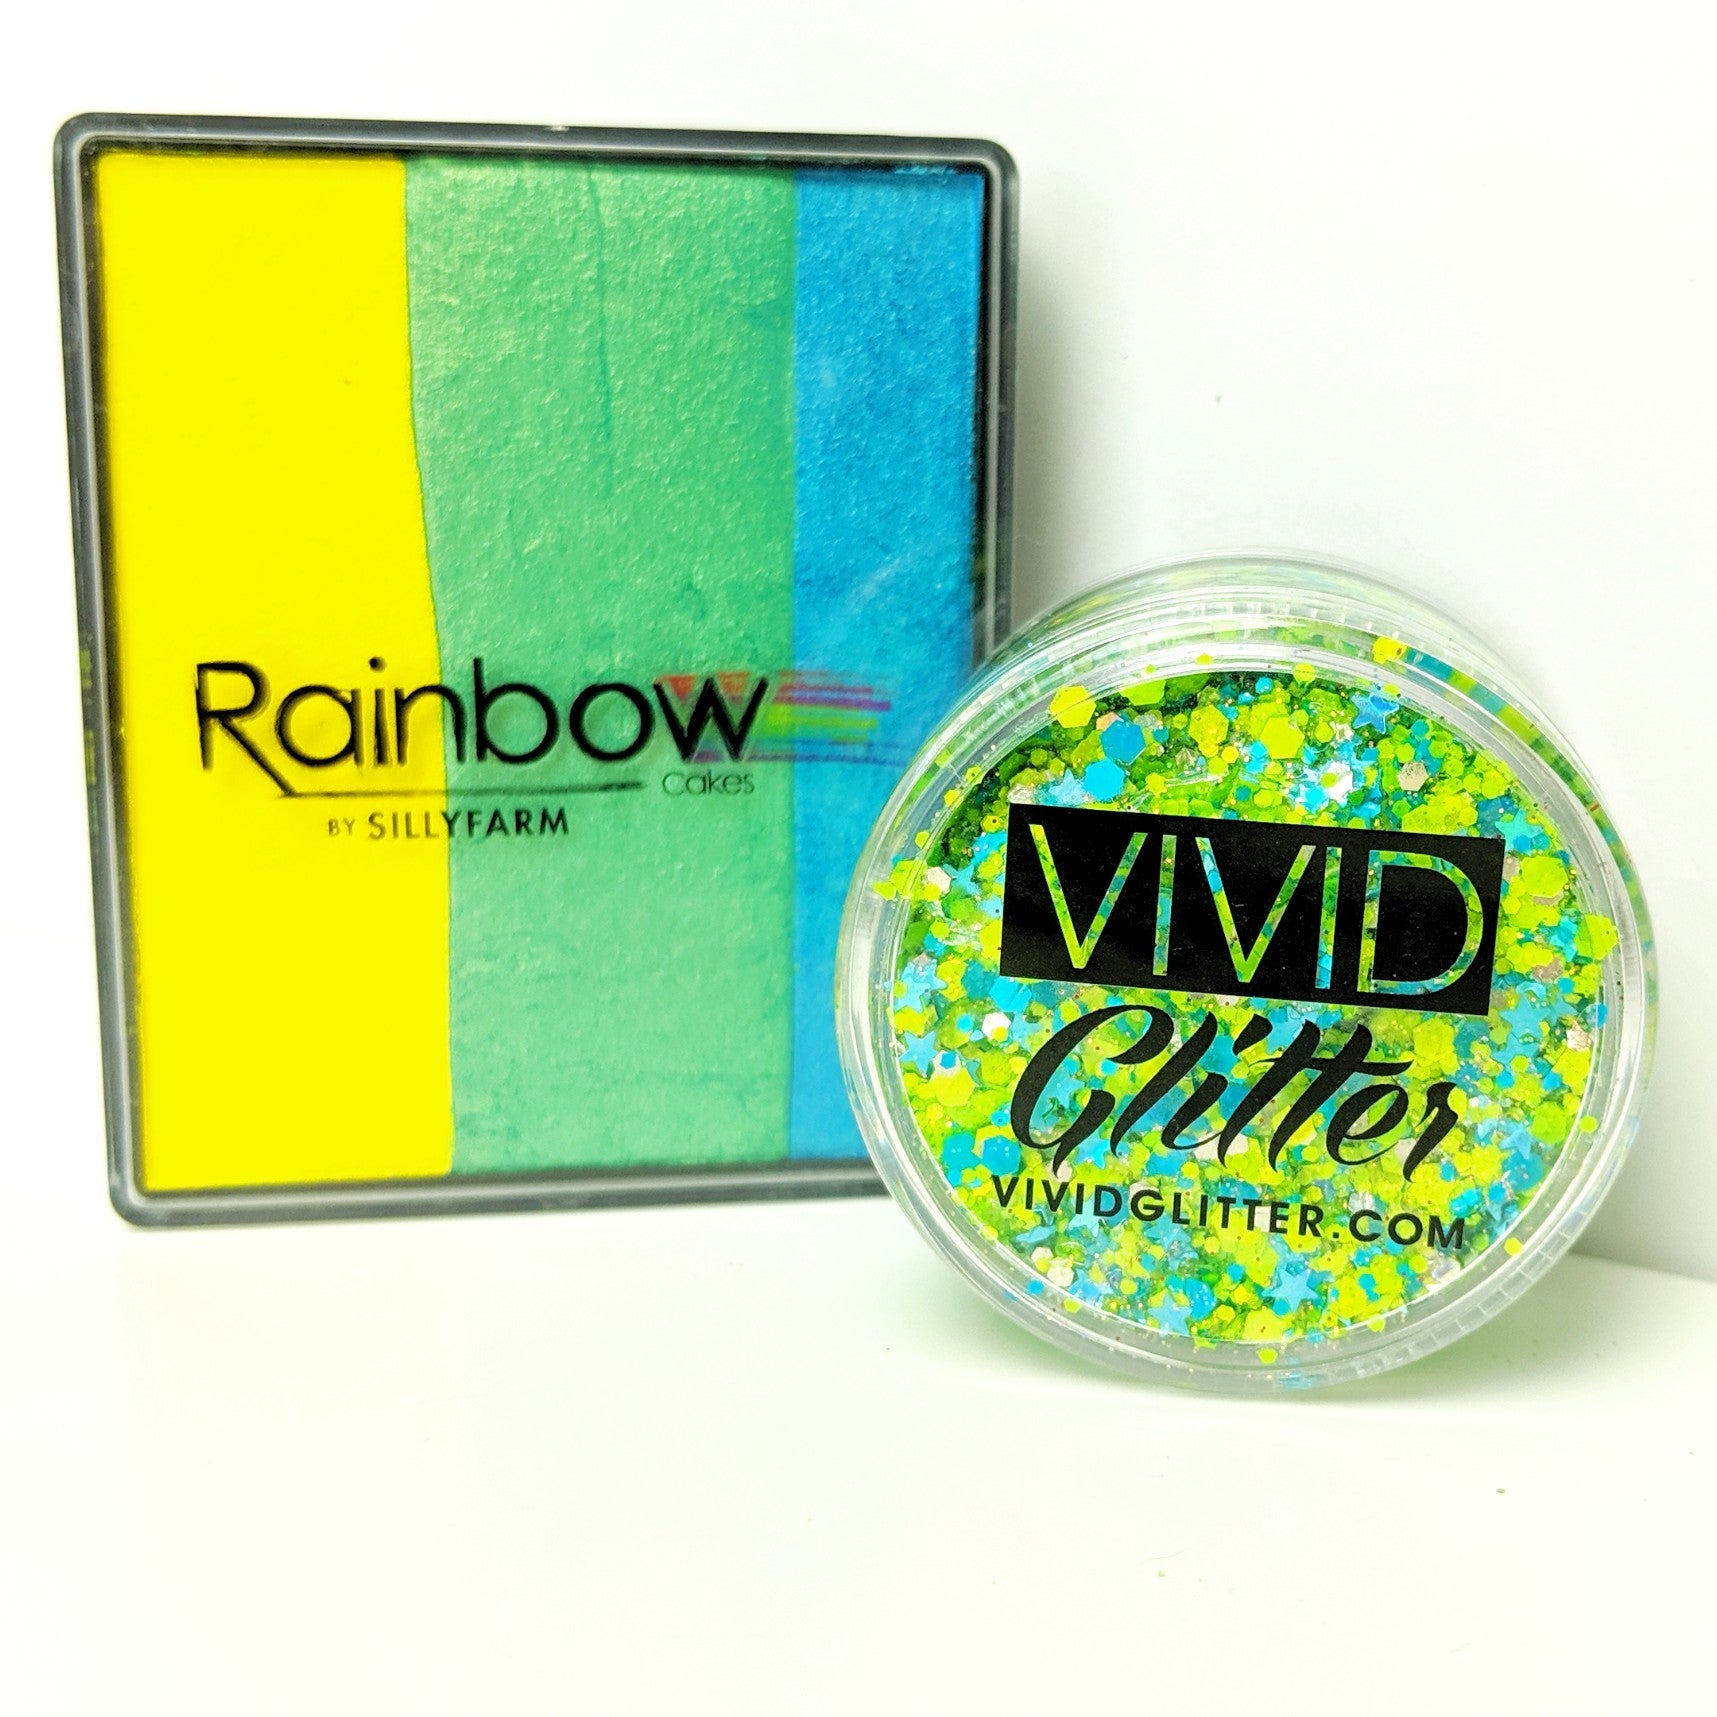 VIVID Glitter Ocean Breeze Rainbow Cake Silly Farm Mendoza match set